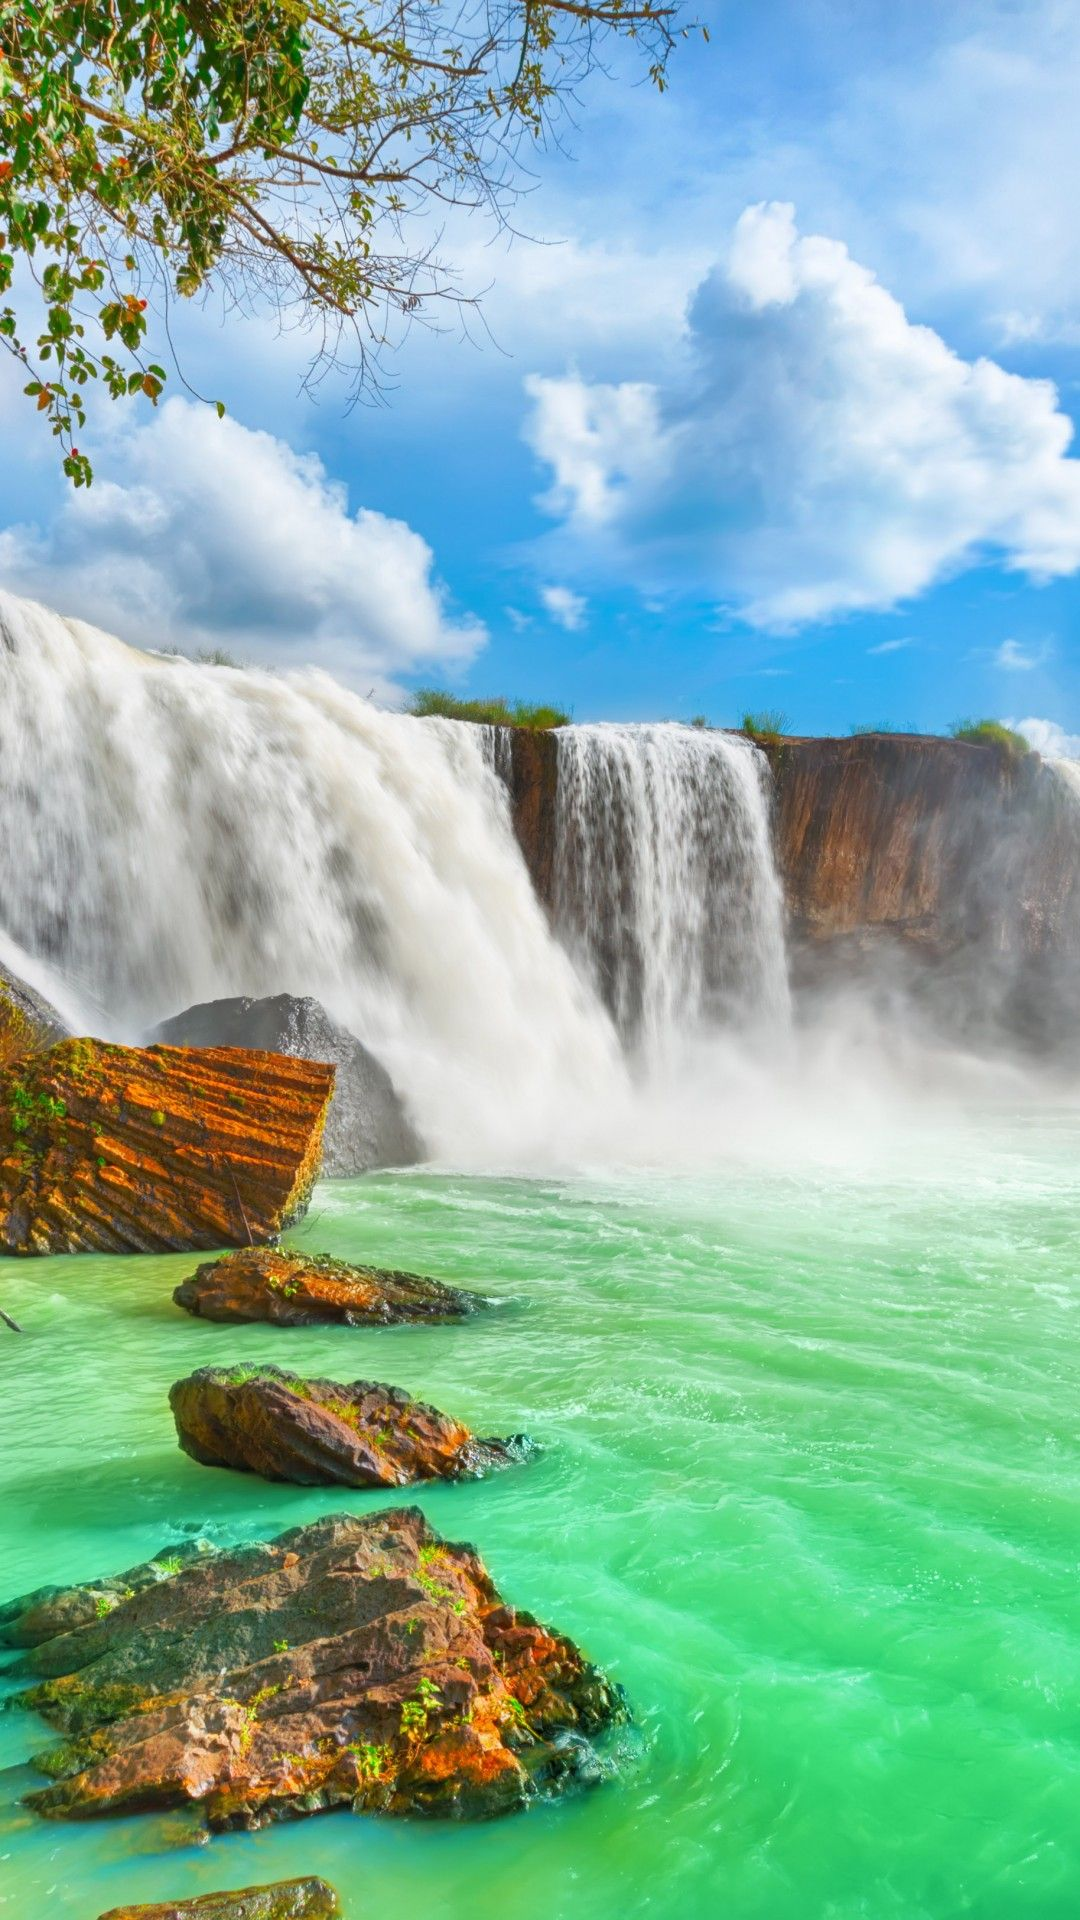 Beautiful Wallpapers Hupages Download Iphone Wallpapers Scenery Wallpaper Waterfall Wallpaper Waterfall